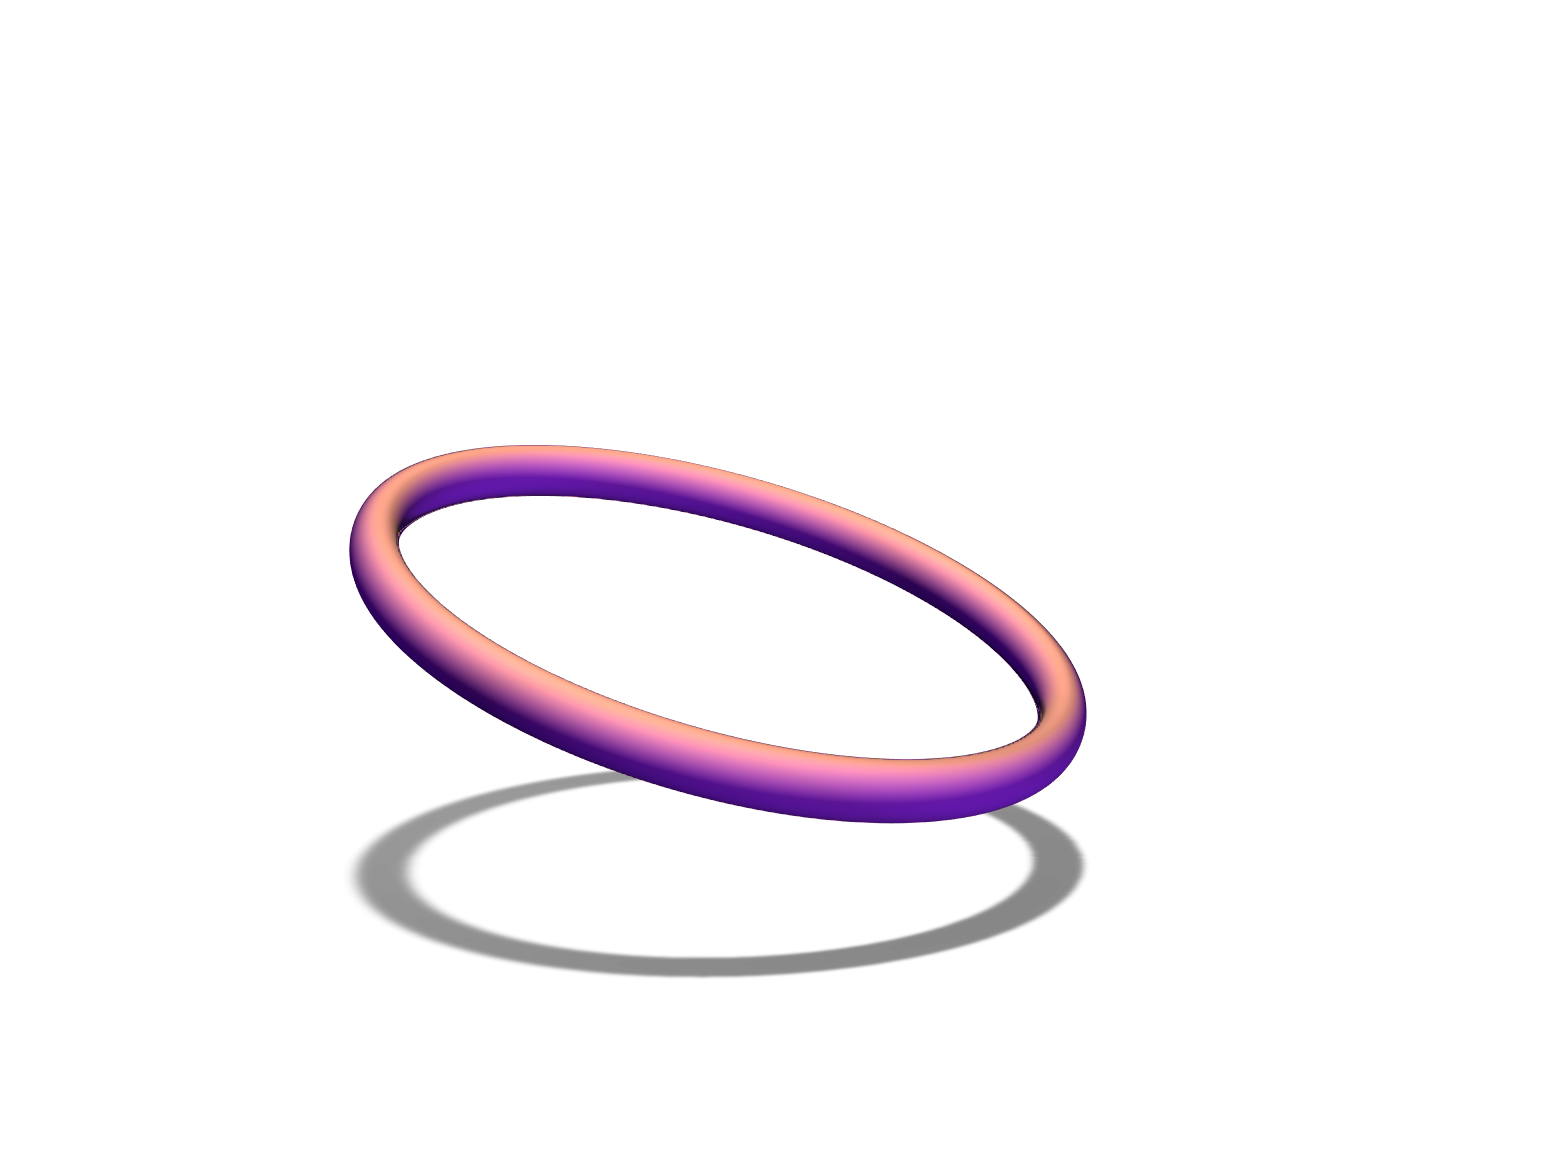 RING riangasdf - 3D design by 95mxiao Mar 16, 2018